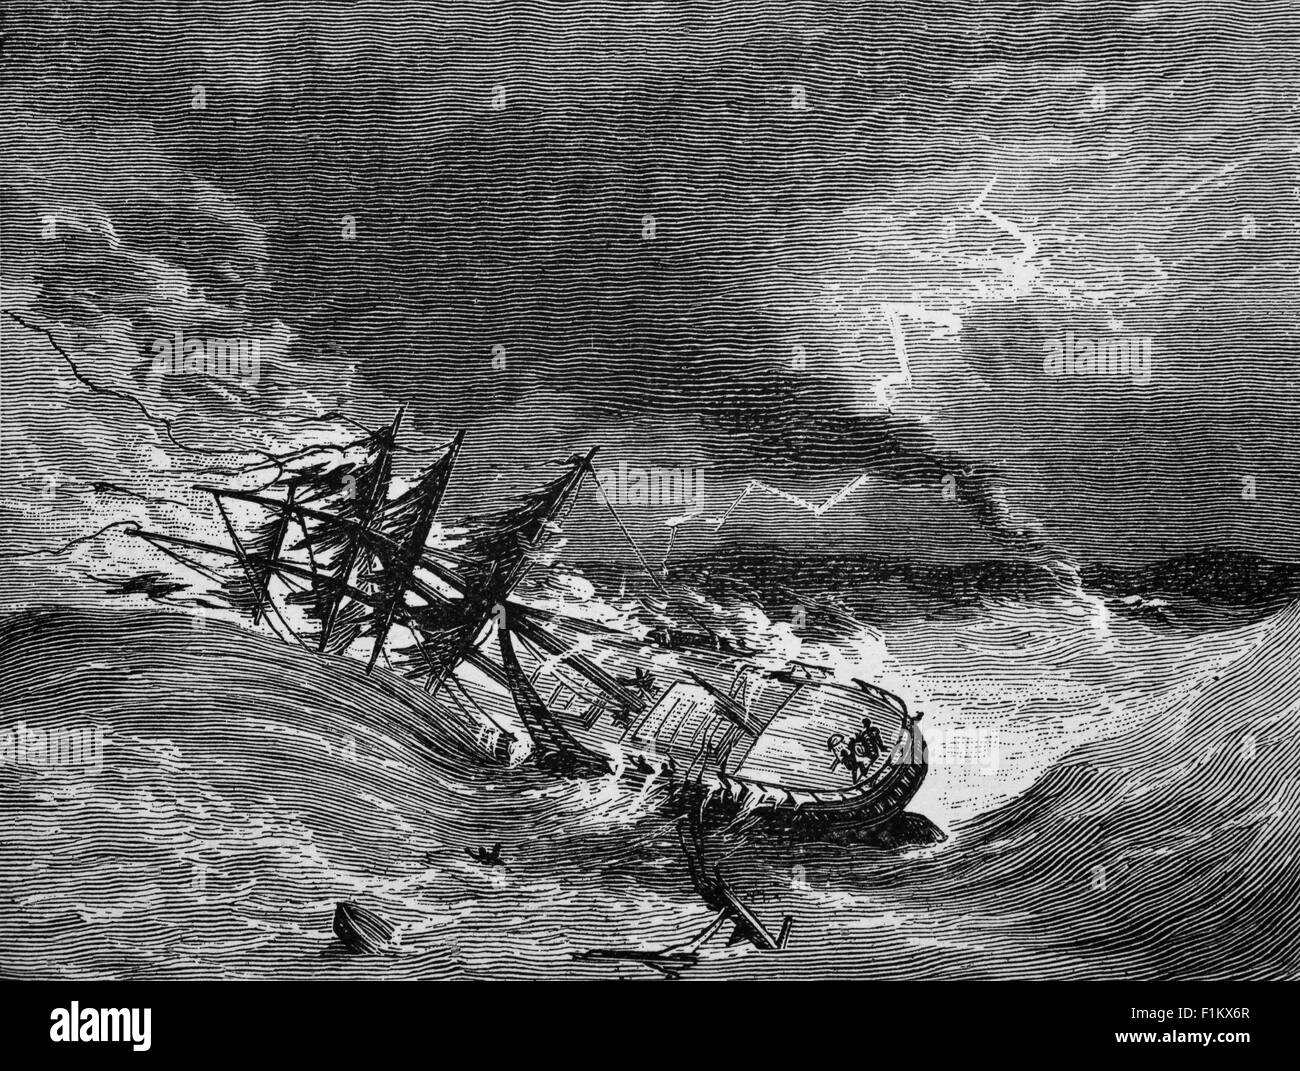 Ocean going sailing ship in distress, from a storm and waterspout. - Stock Image